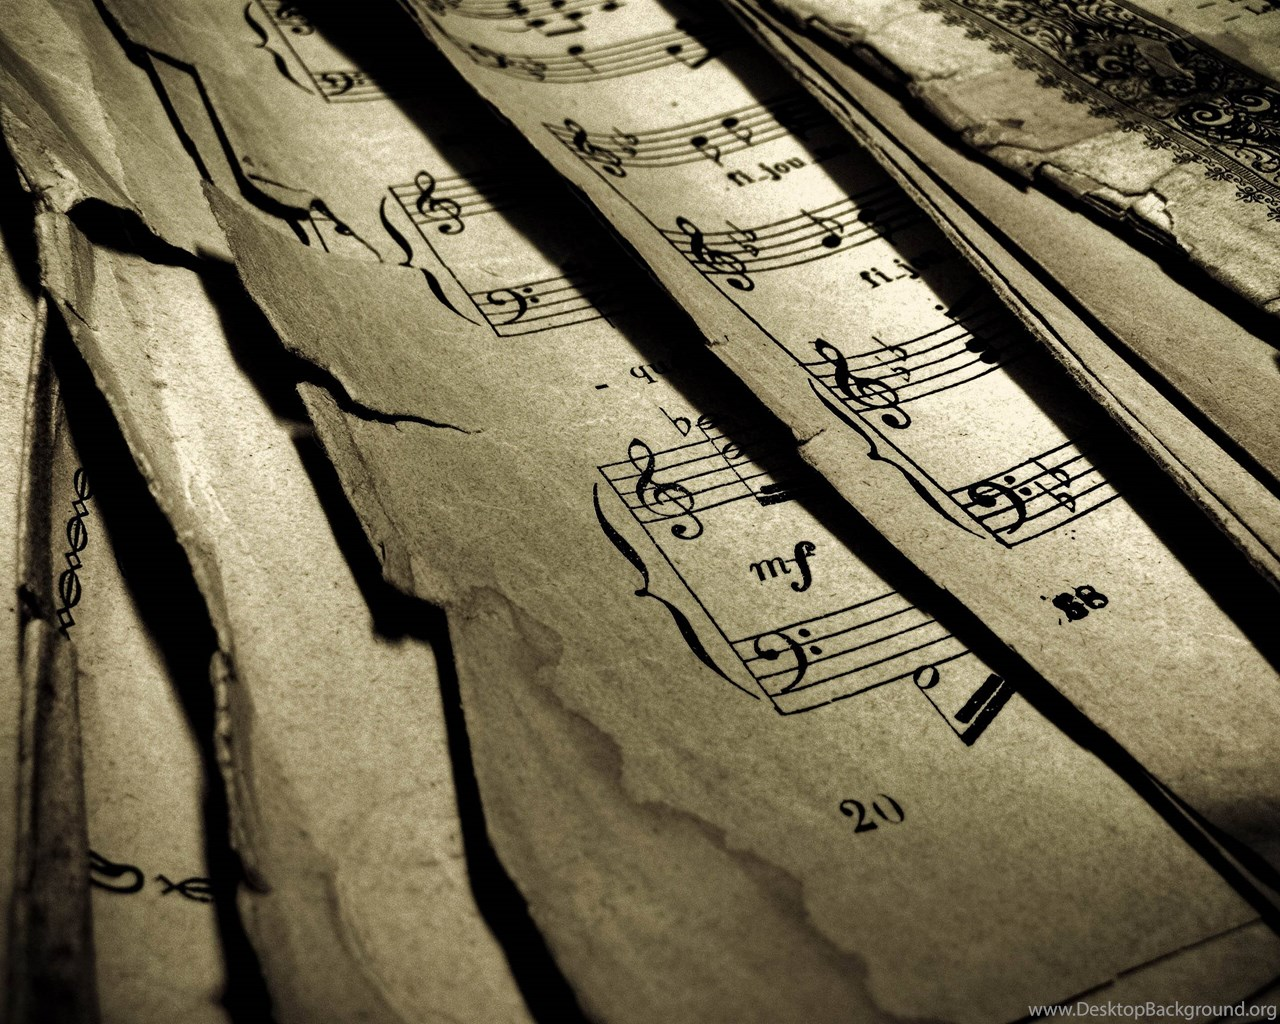 Must see Wallpaper Music Iphone 5 - 766654_music-notes-wallpapers-for-iphone-uncalke-com_3072x2304_h  2018_255698.jpg